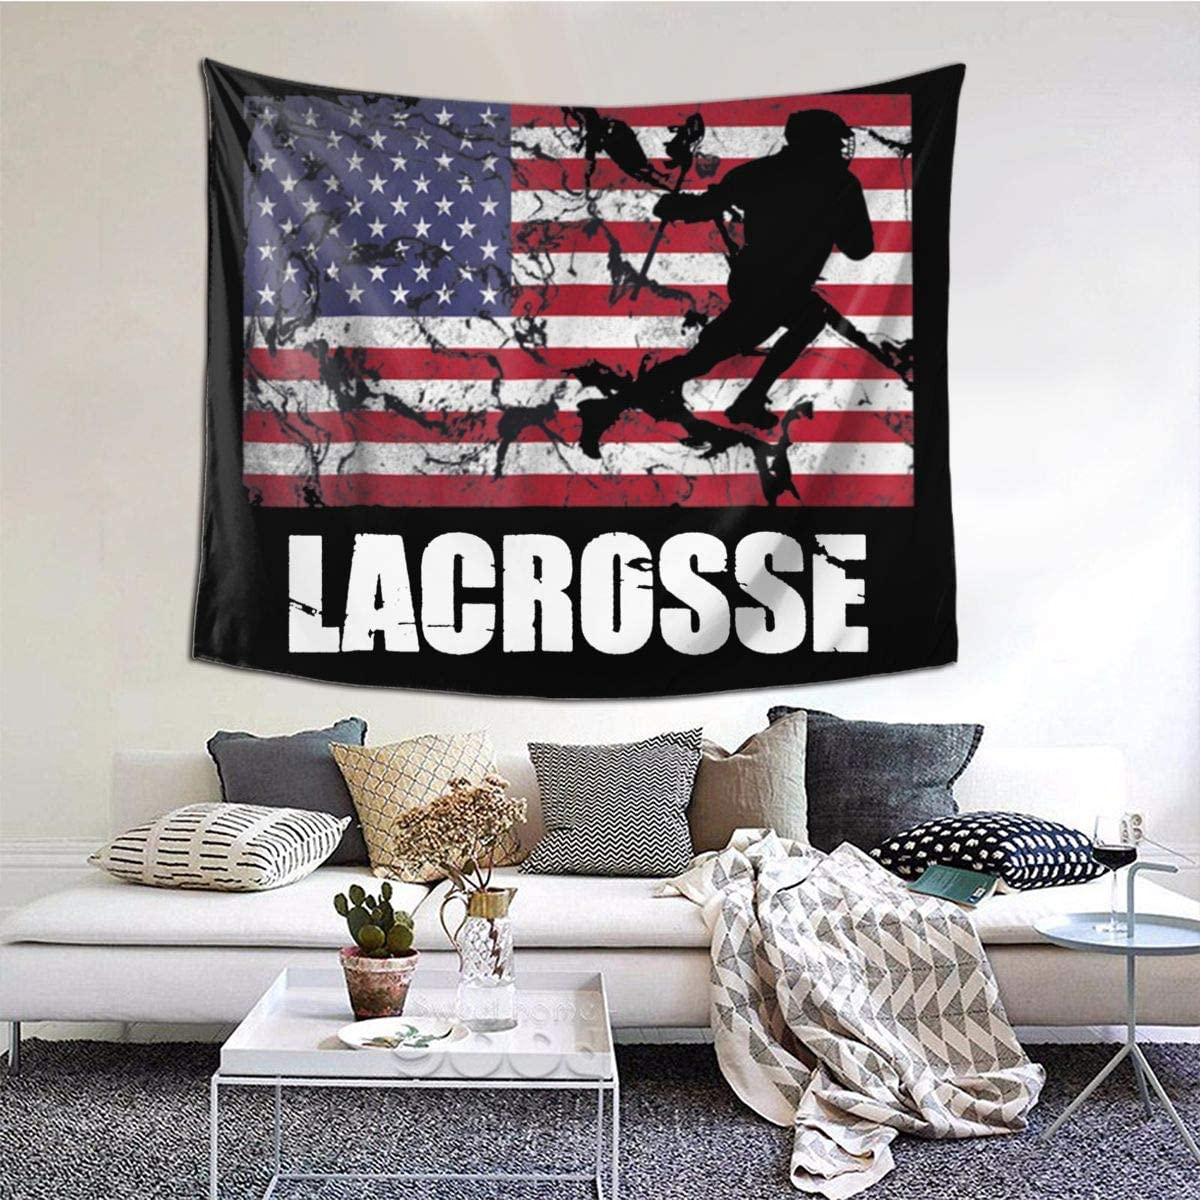 Lacrosse American Flag Tapestry Wall Hanging Tapestry For Living Room Tapestry 60 X 51 Inch Wall Blanket Tapestry Indoor Tapestries